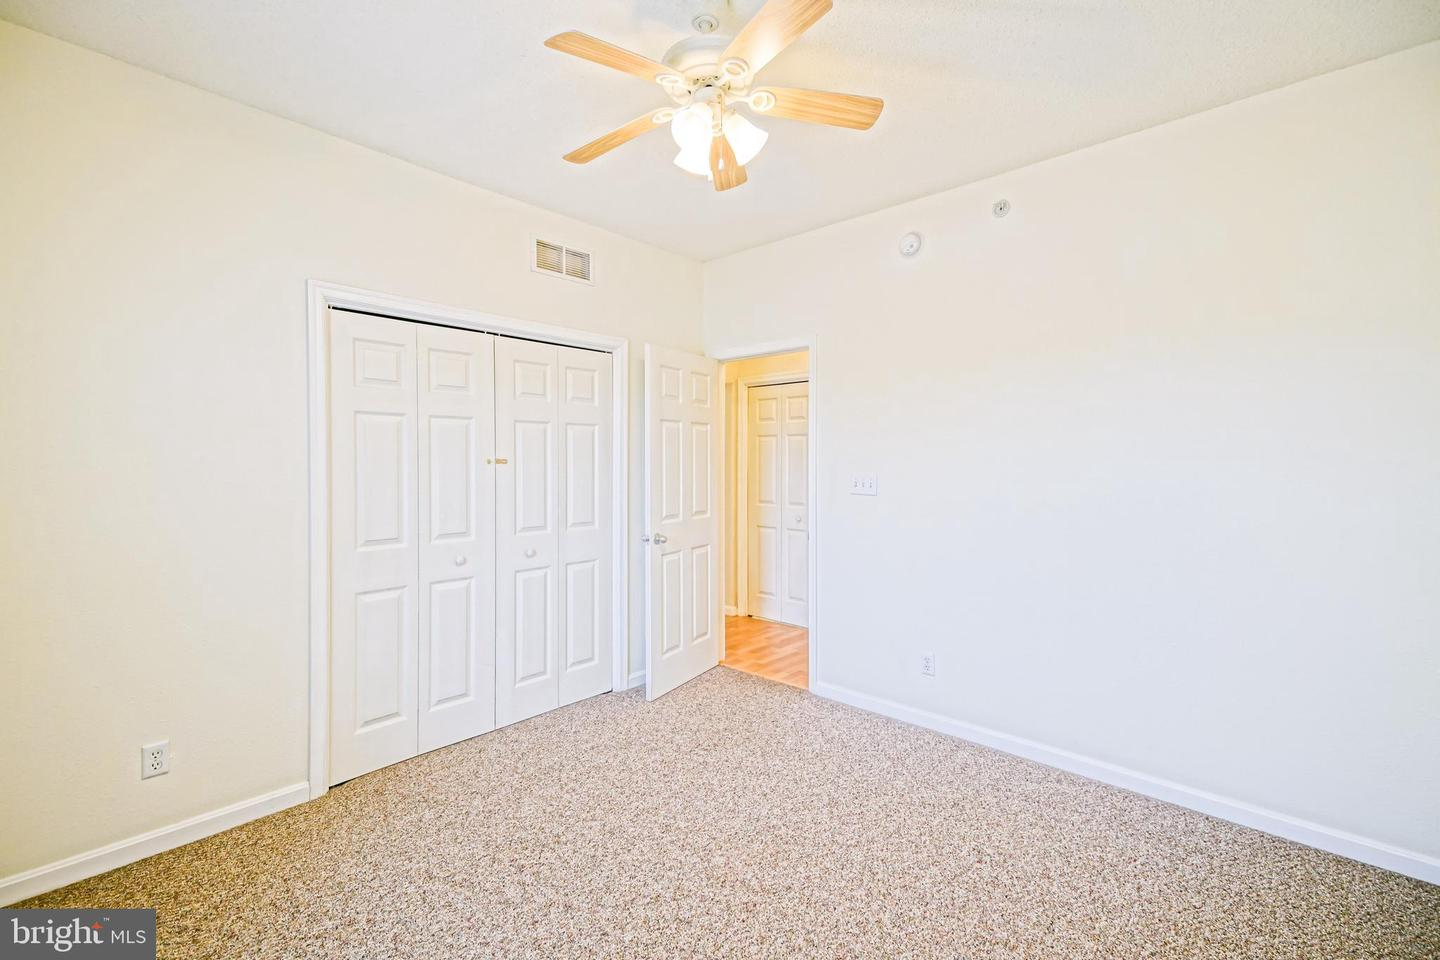 DESU139032-301664483000-2019-06-24-14-51-56 33156 N Village Loop #4202 | Lewes, DE Real Estate For Sale | MLS# Desu139032  - Lee Ann Group